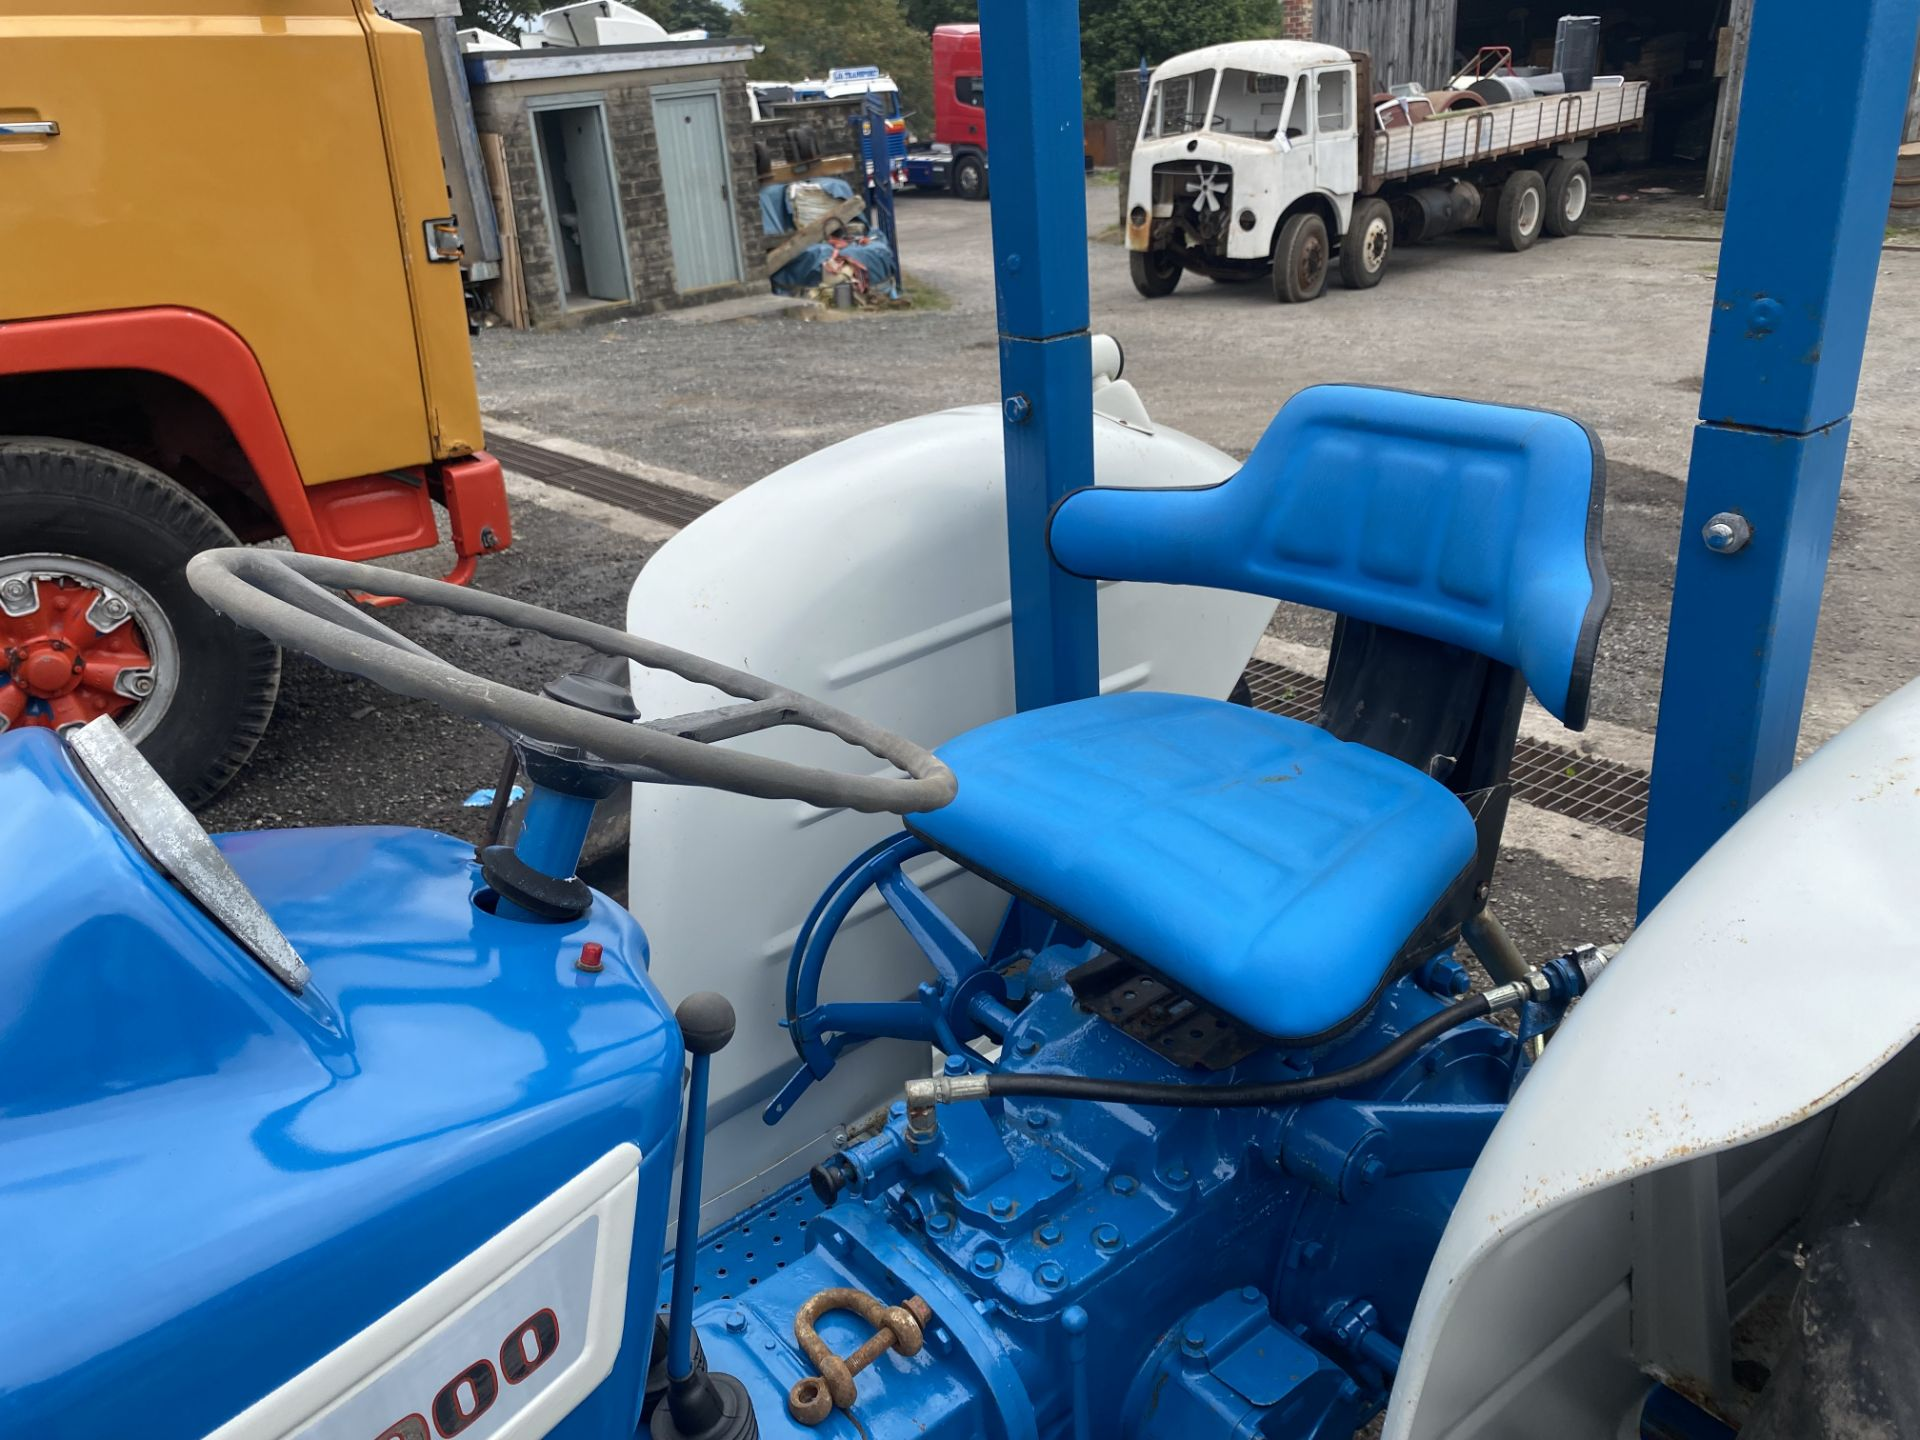 Ford 2000 Agricultural Tractor, vendors comments – nice original condition, clutch is stuck on - Image 7 of 9